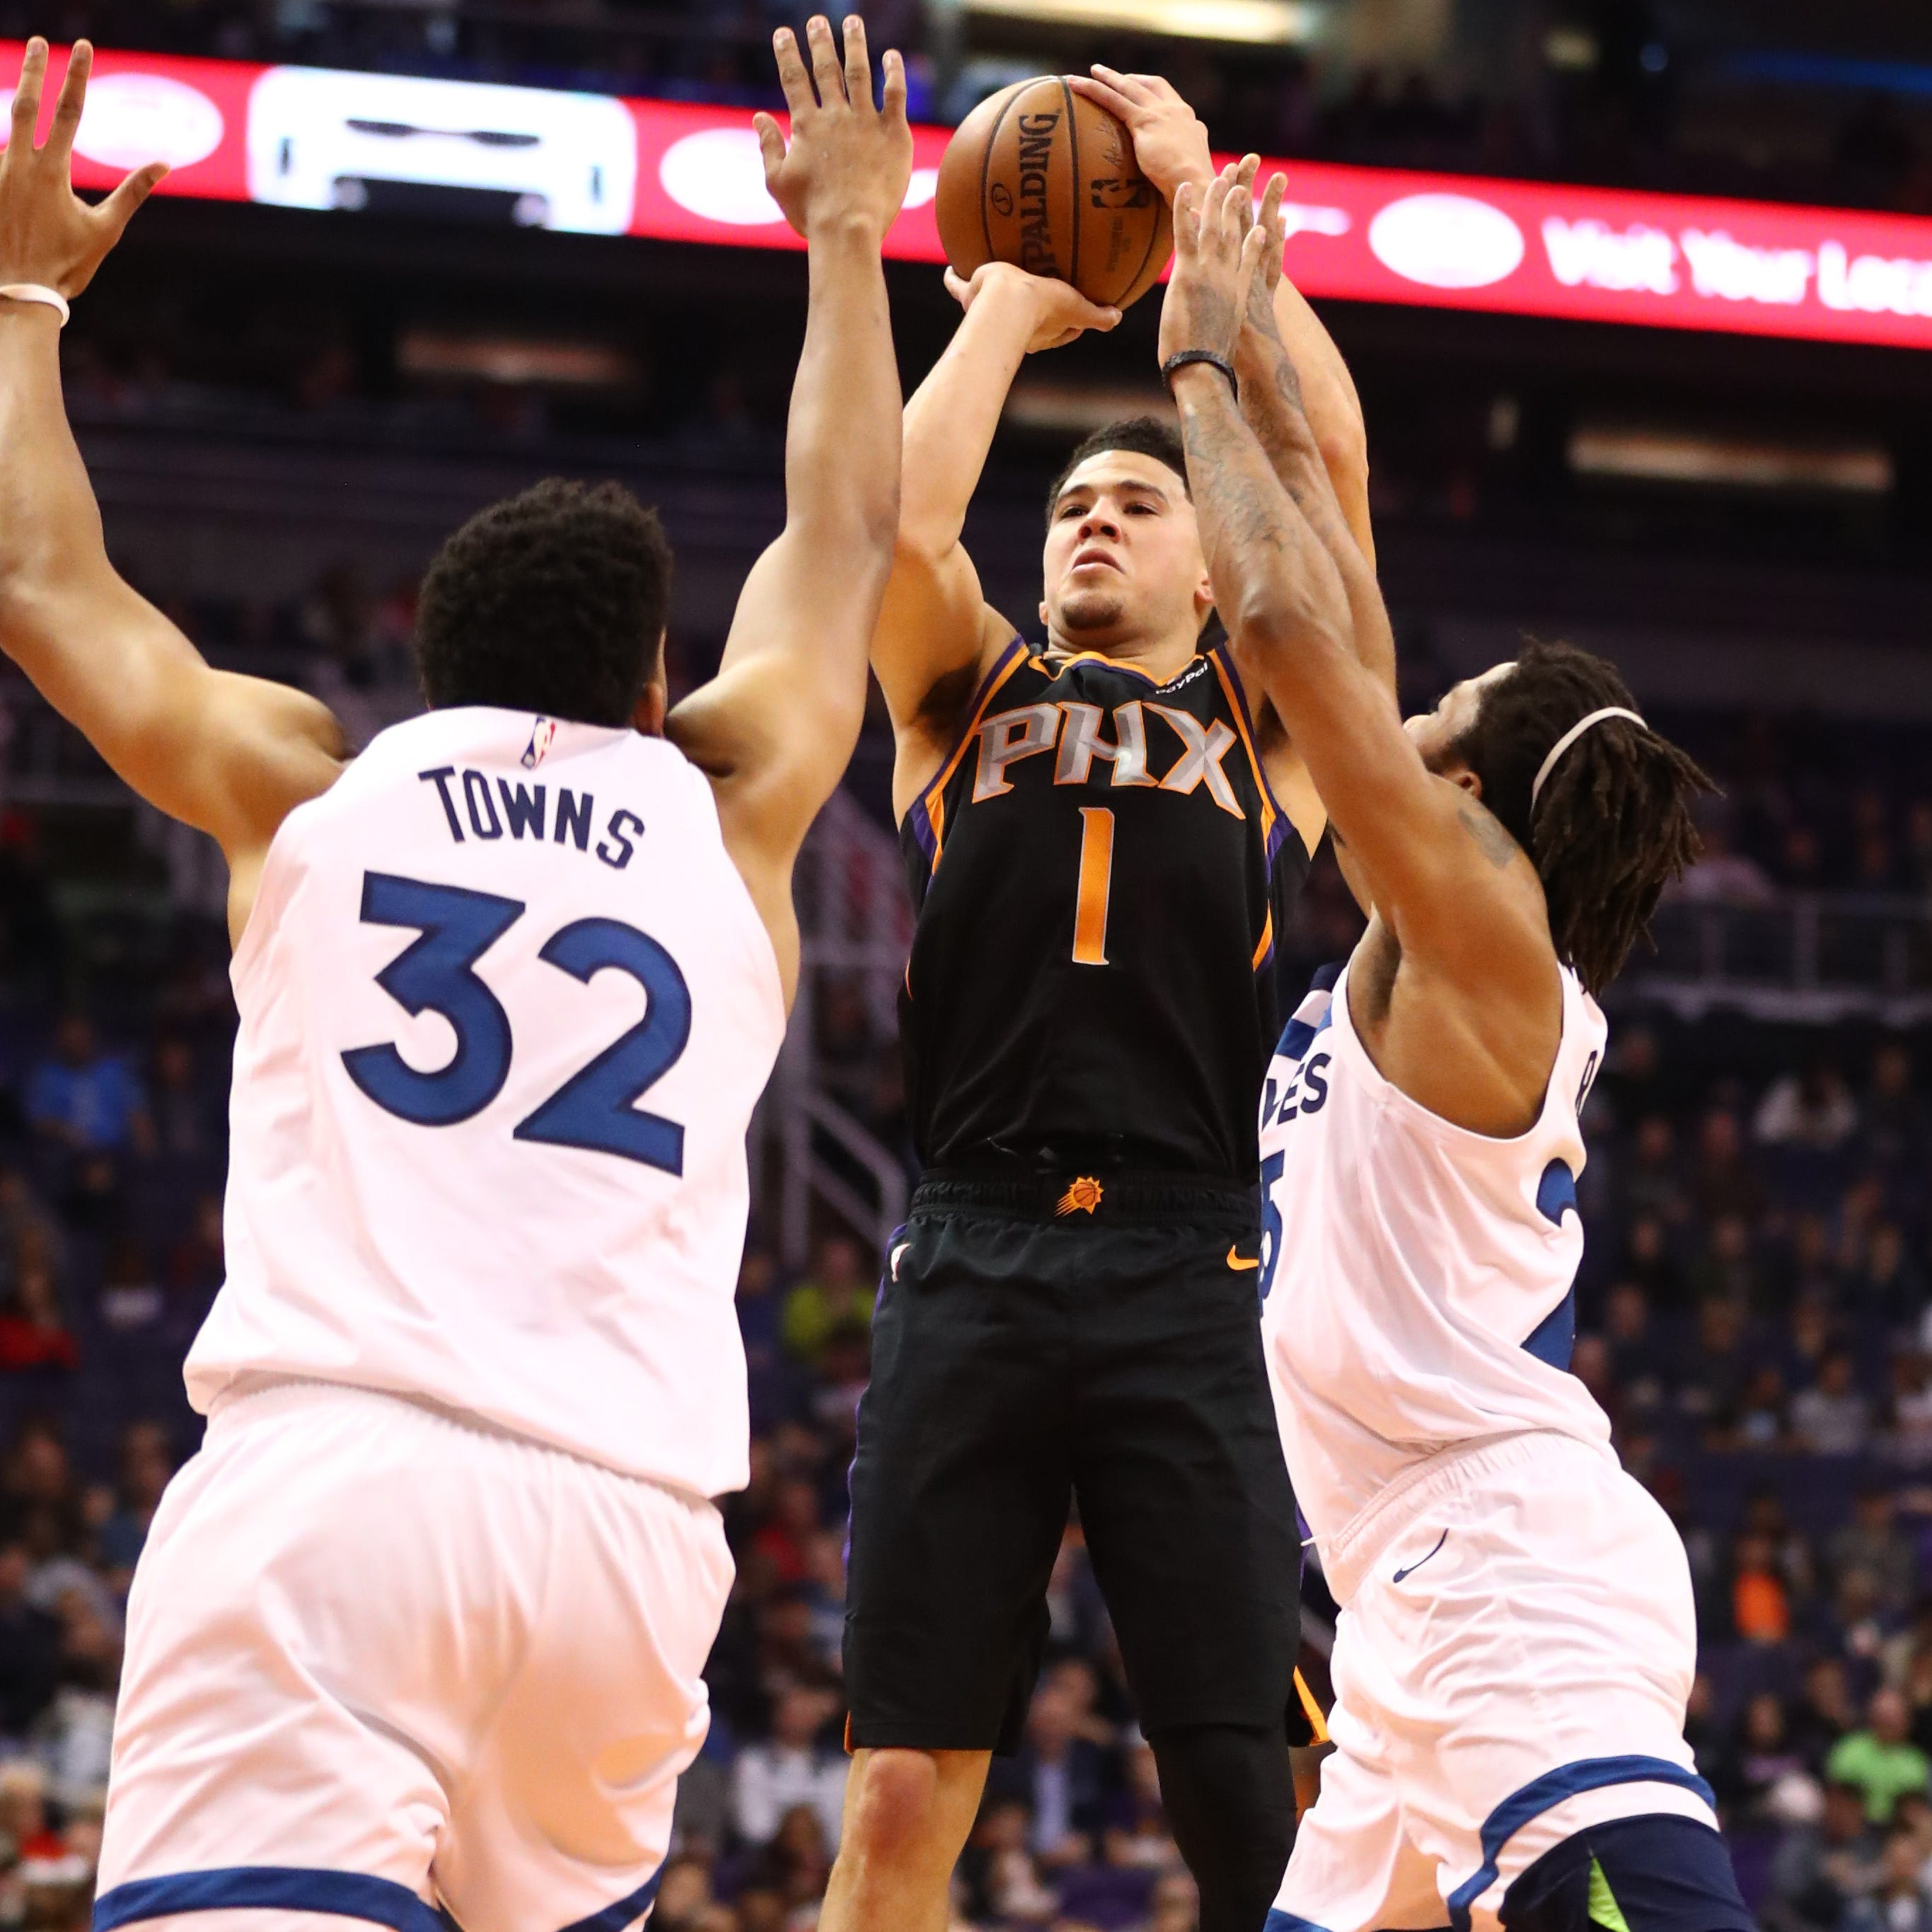 Devin Booker returns and helps deliver Suns' first set of consecutive wins with 28 points